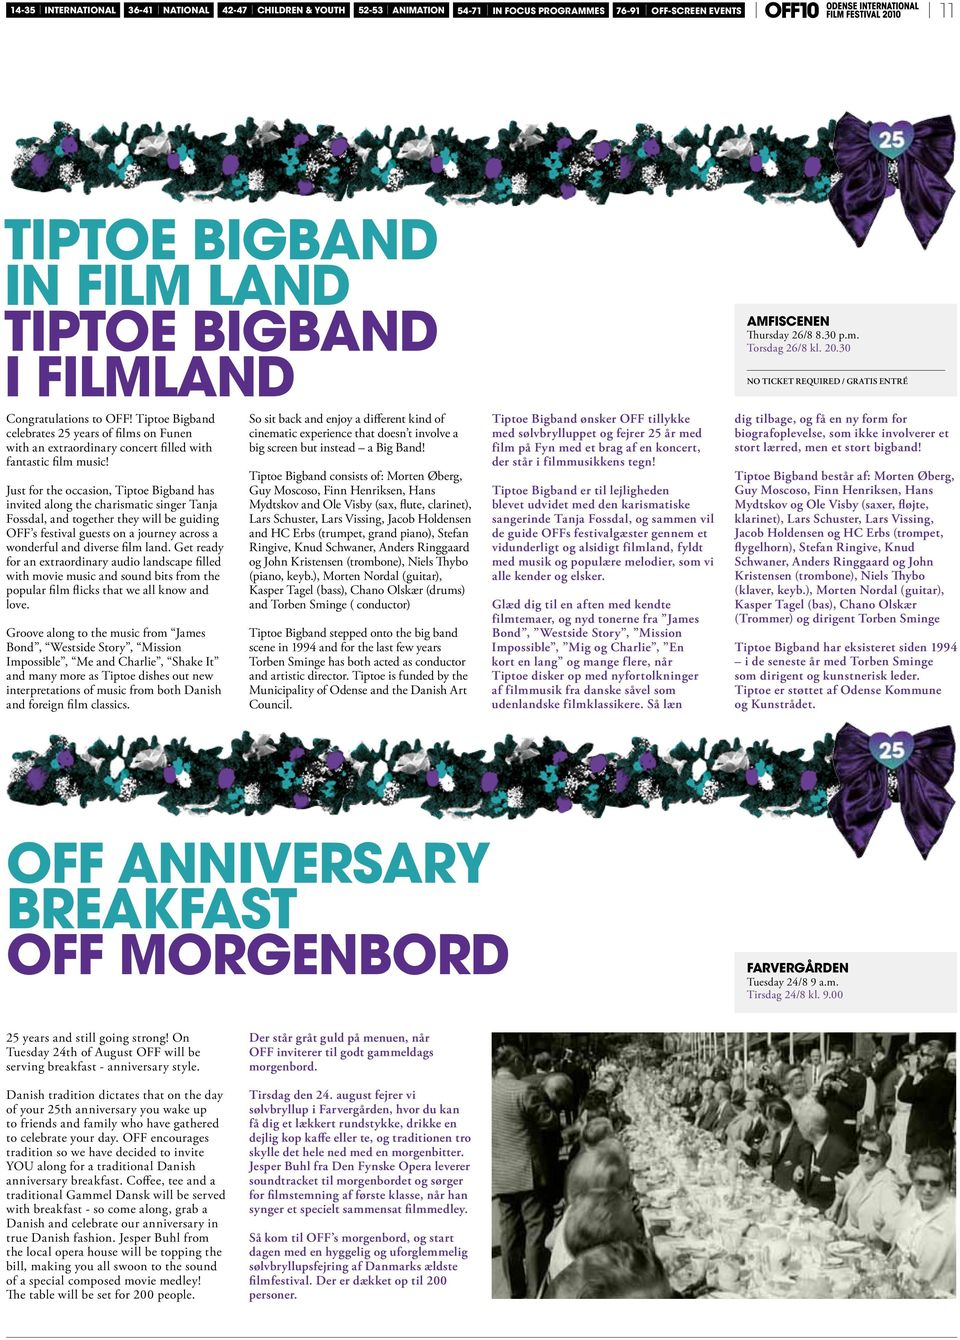 Just for the occasion, Tiptoe Bigband has invited along the charismatic singer Tanja Fossdal, and together they will be guiding OFF s festival guests on a journey across a wonderful and diverse film